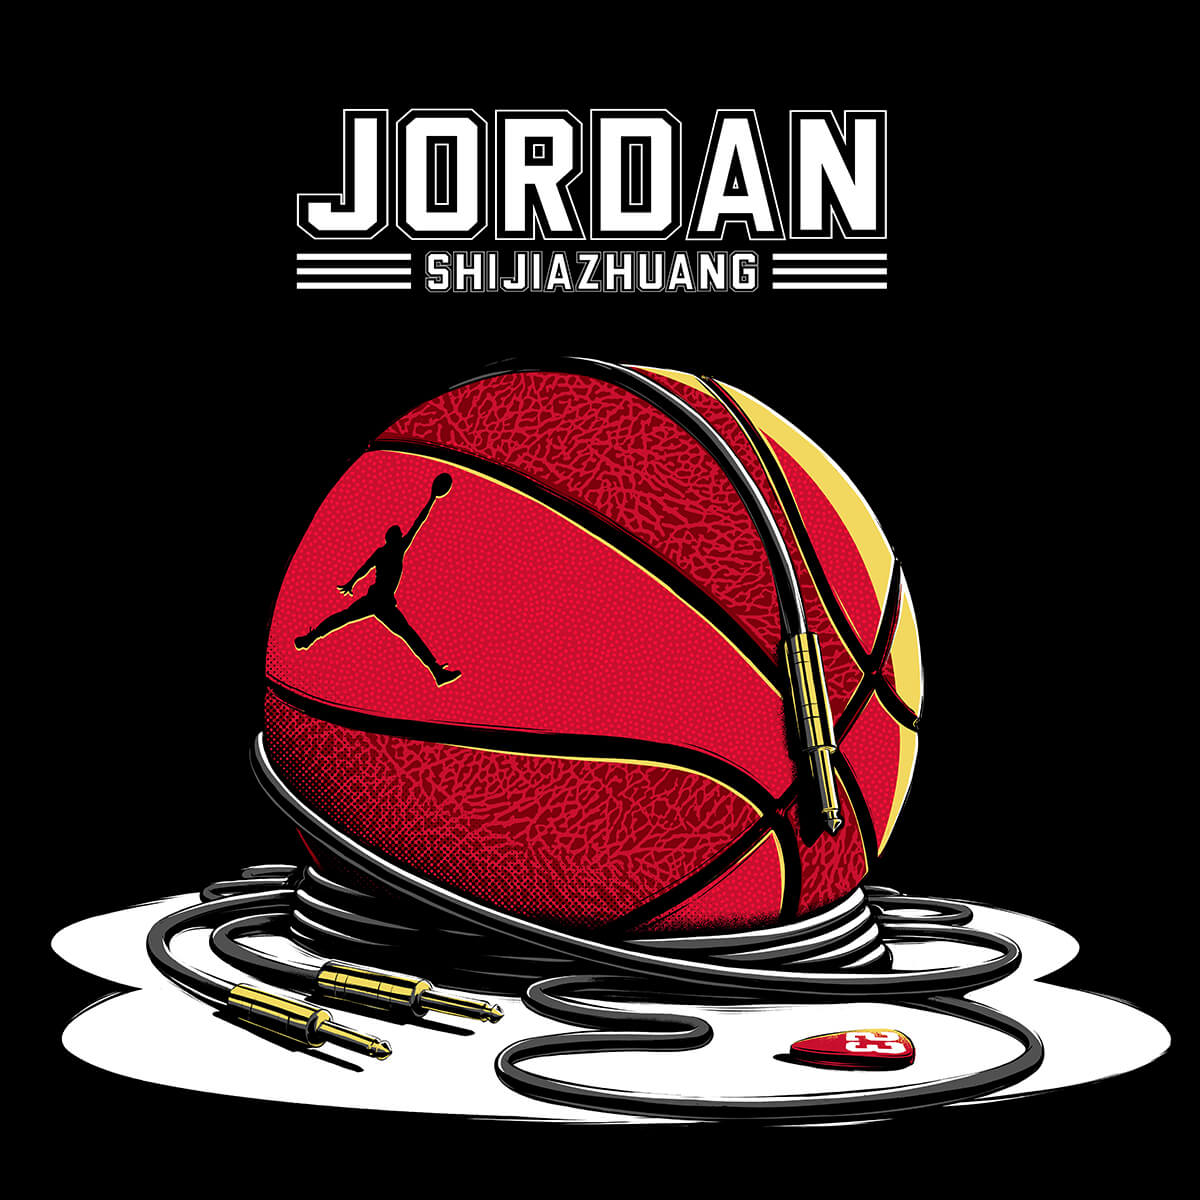 Jordan By You basketball illustration rock